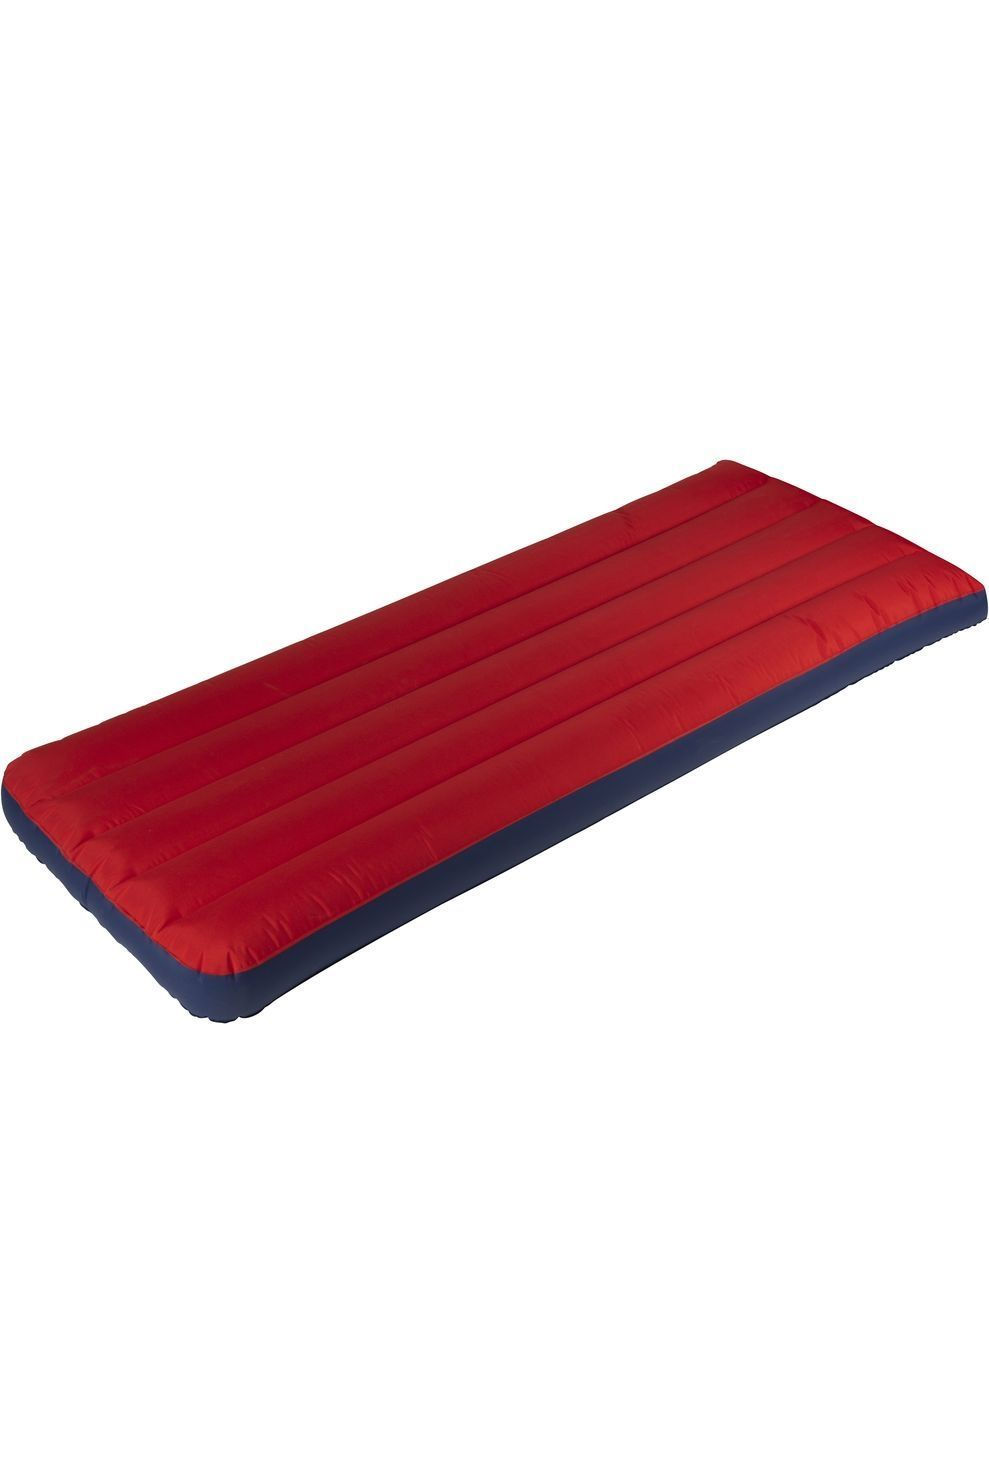 Bo-Camp Luchtbed Classic 1-Persoons - Blauw/Rood